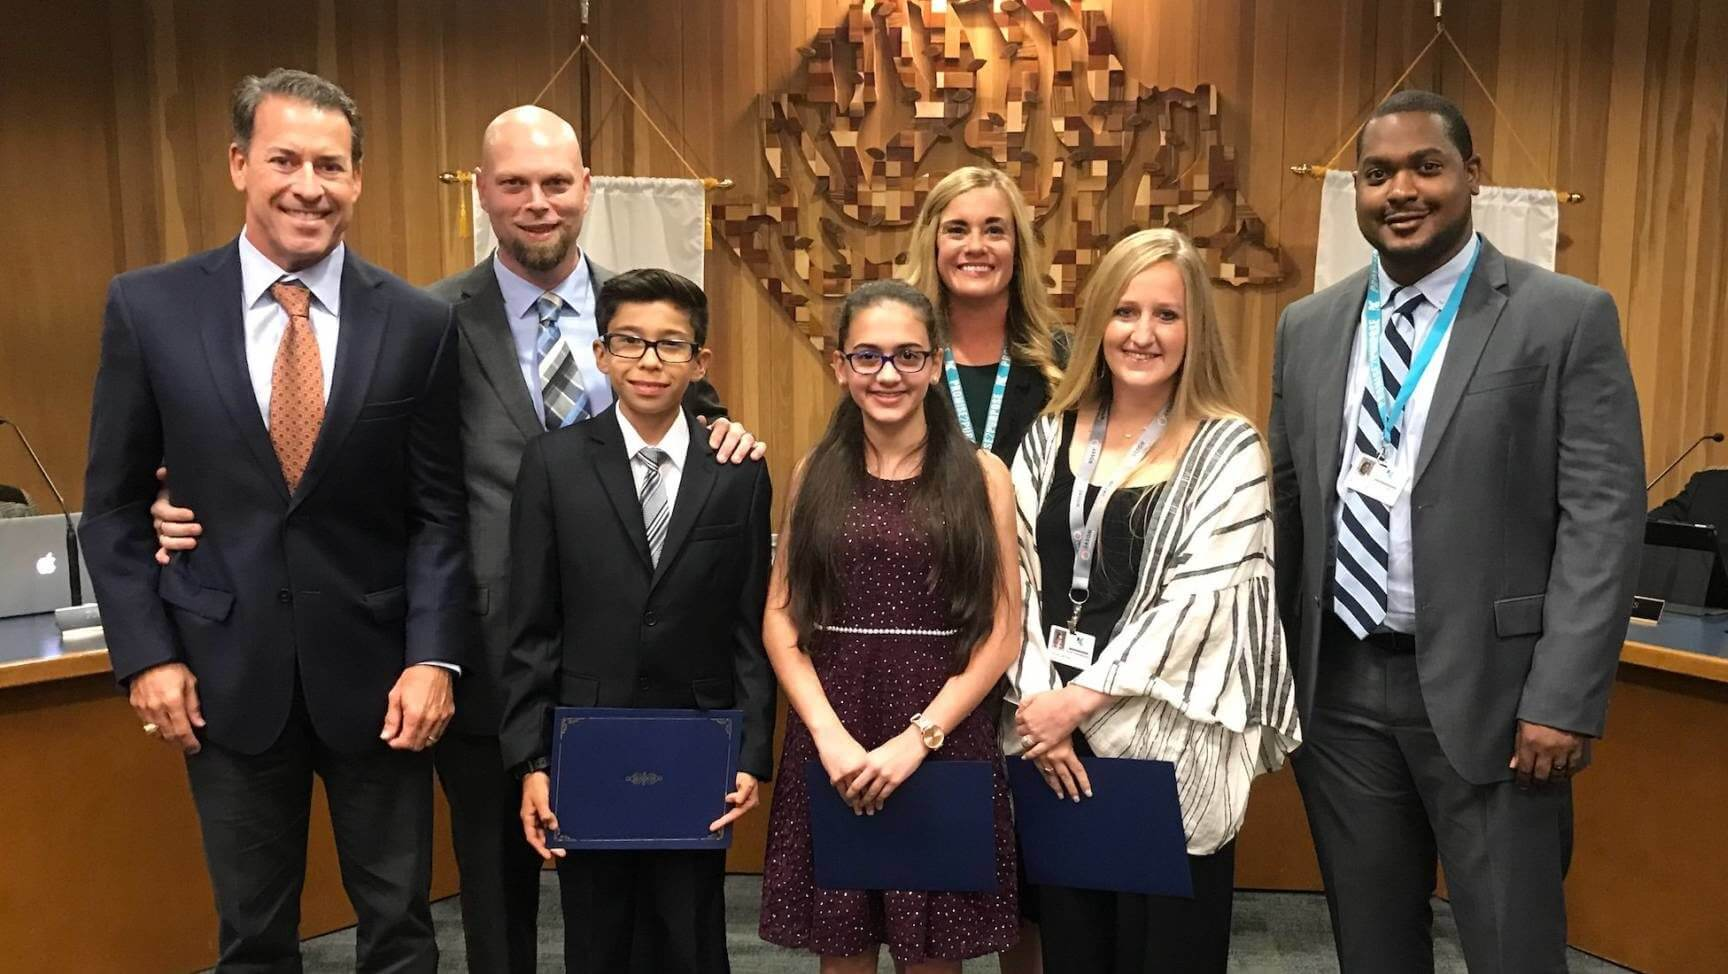 Outstanding Kleb Students and Educators Recognized at Board Meeting